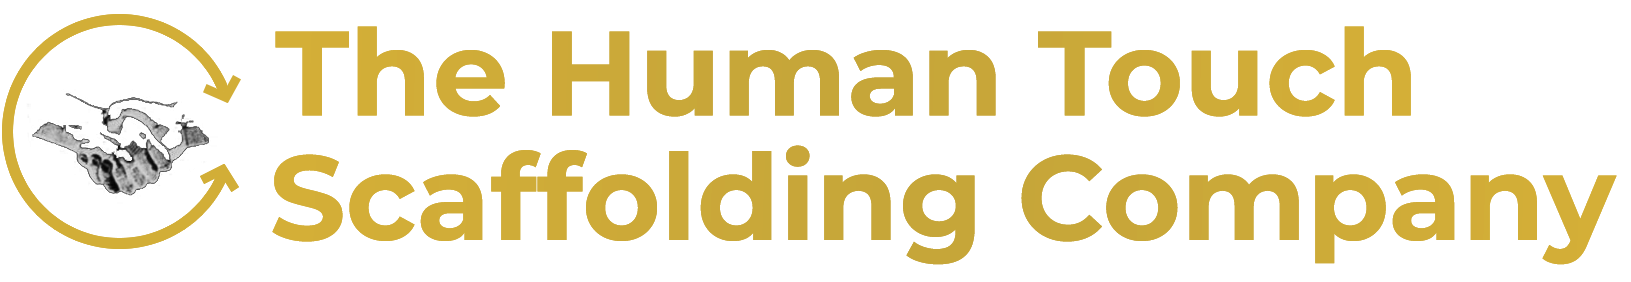 The Human Touch Scaffolding Company Logo